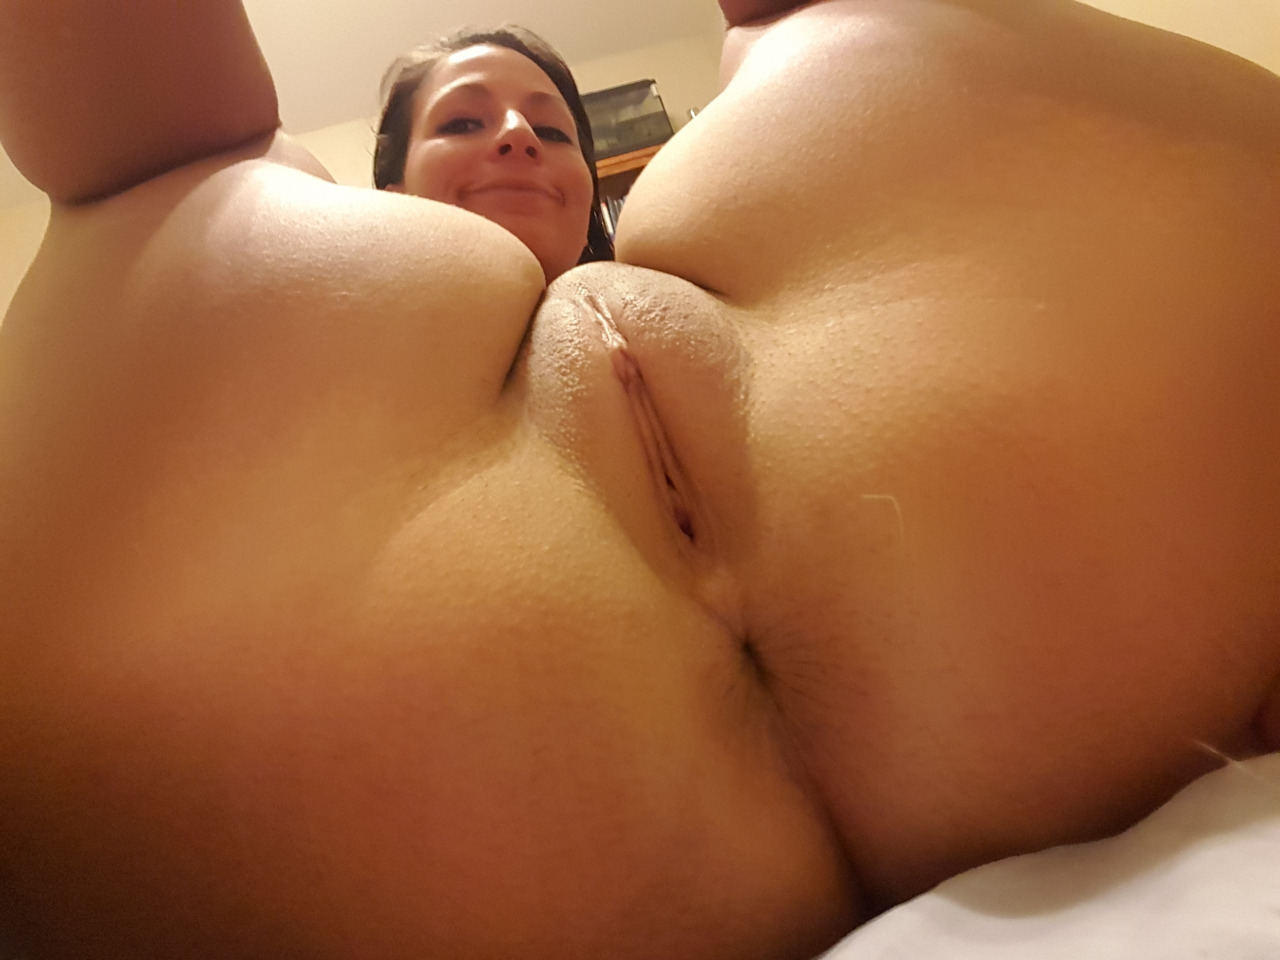 Smooth pussy pictures